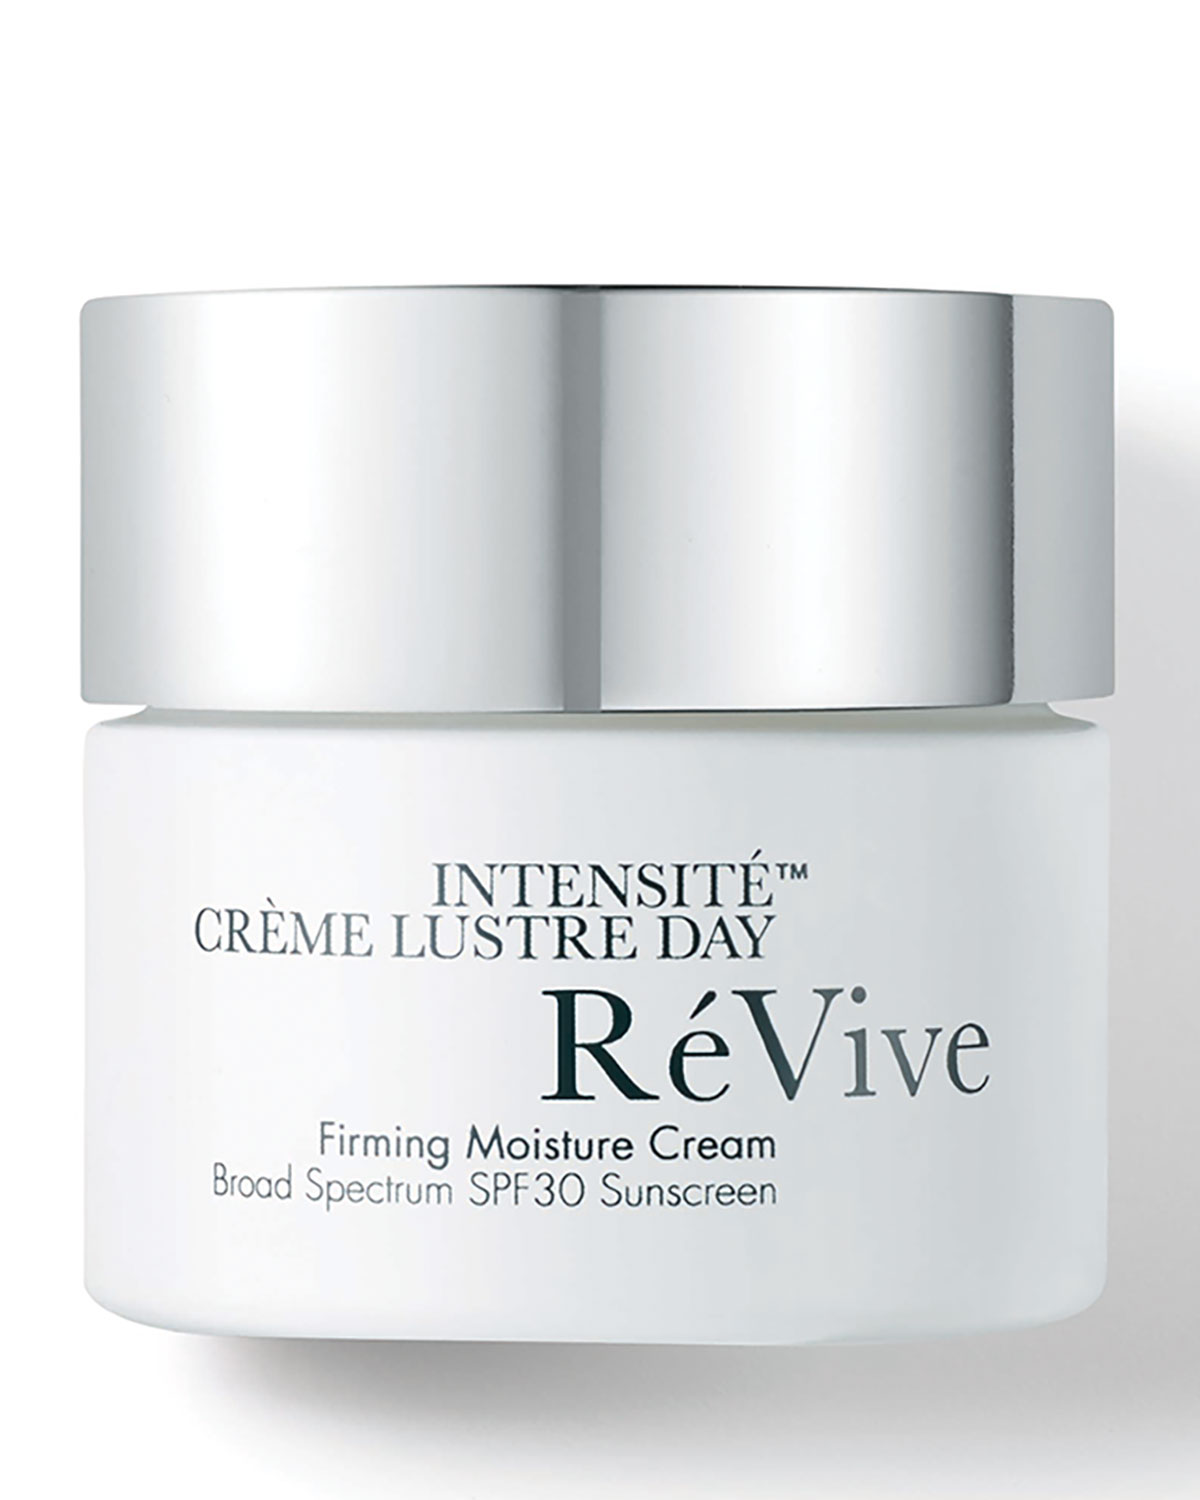 ReVive 1.7 oz. Intensite Creme Lustre Day Firming Moisture Cream Broad Spectrum SPF 30 Sunscreen